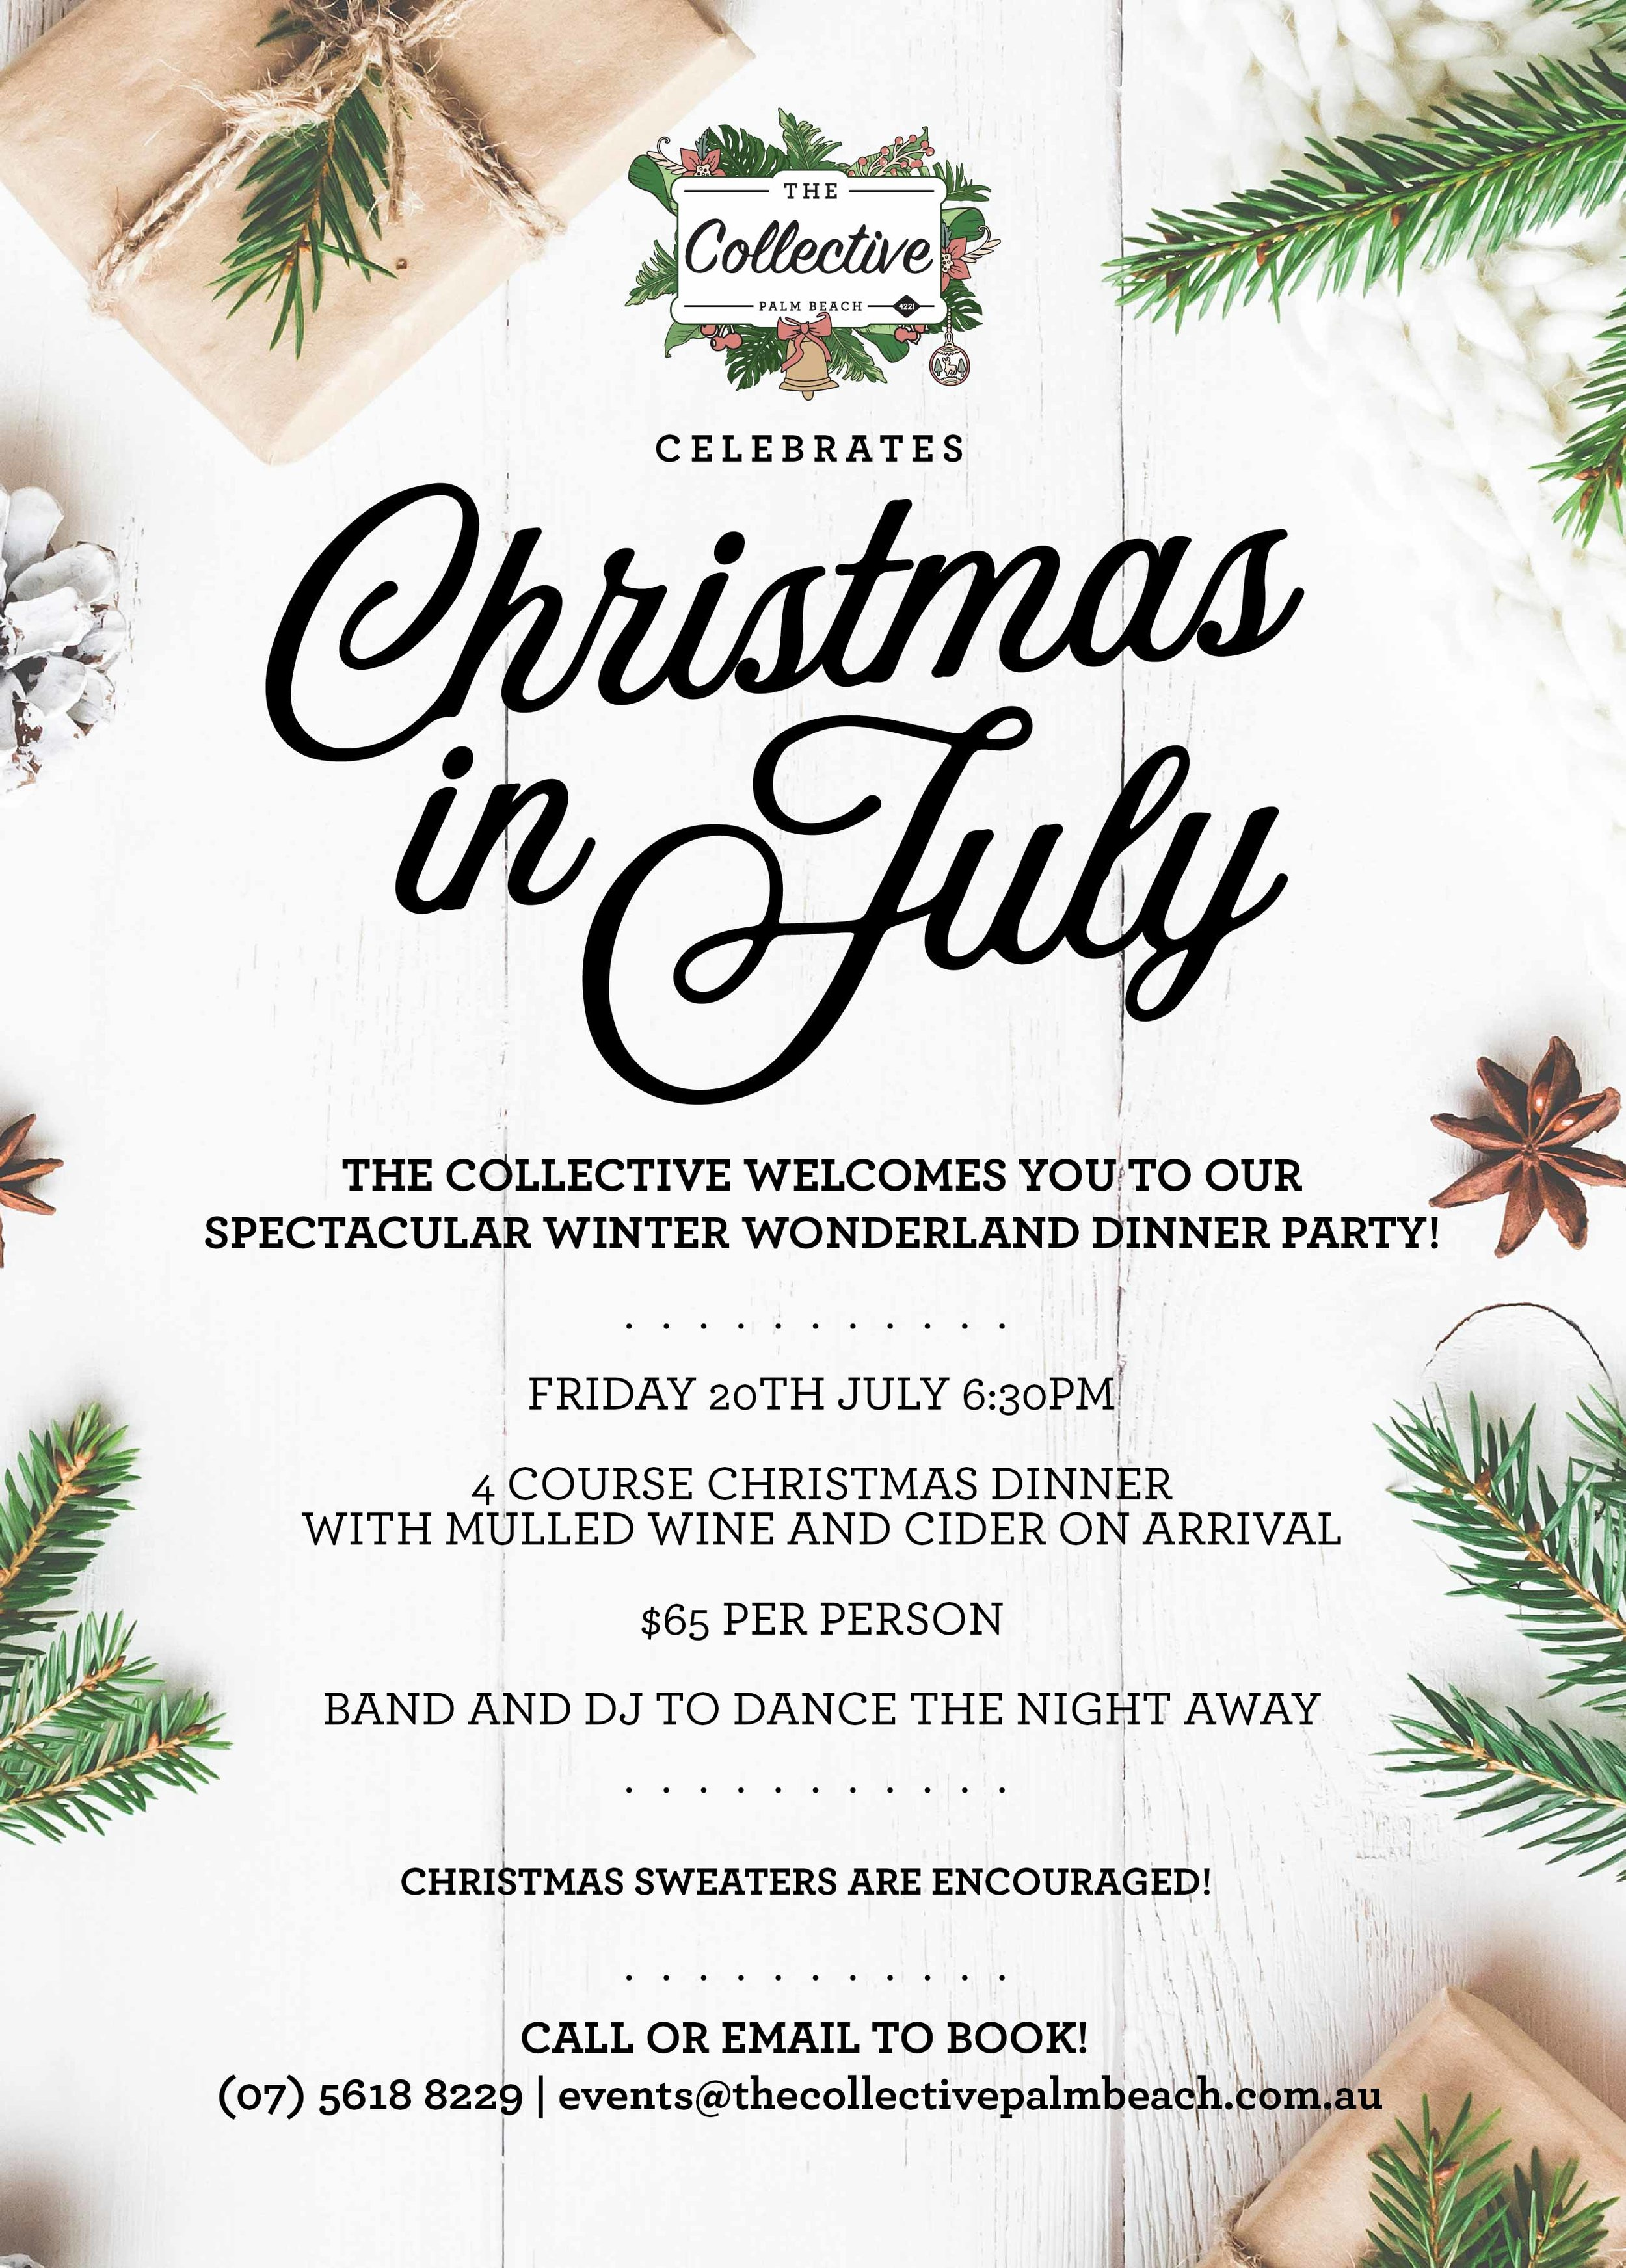 TheCollective_Christmas In Jul 2018-01.jpg